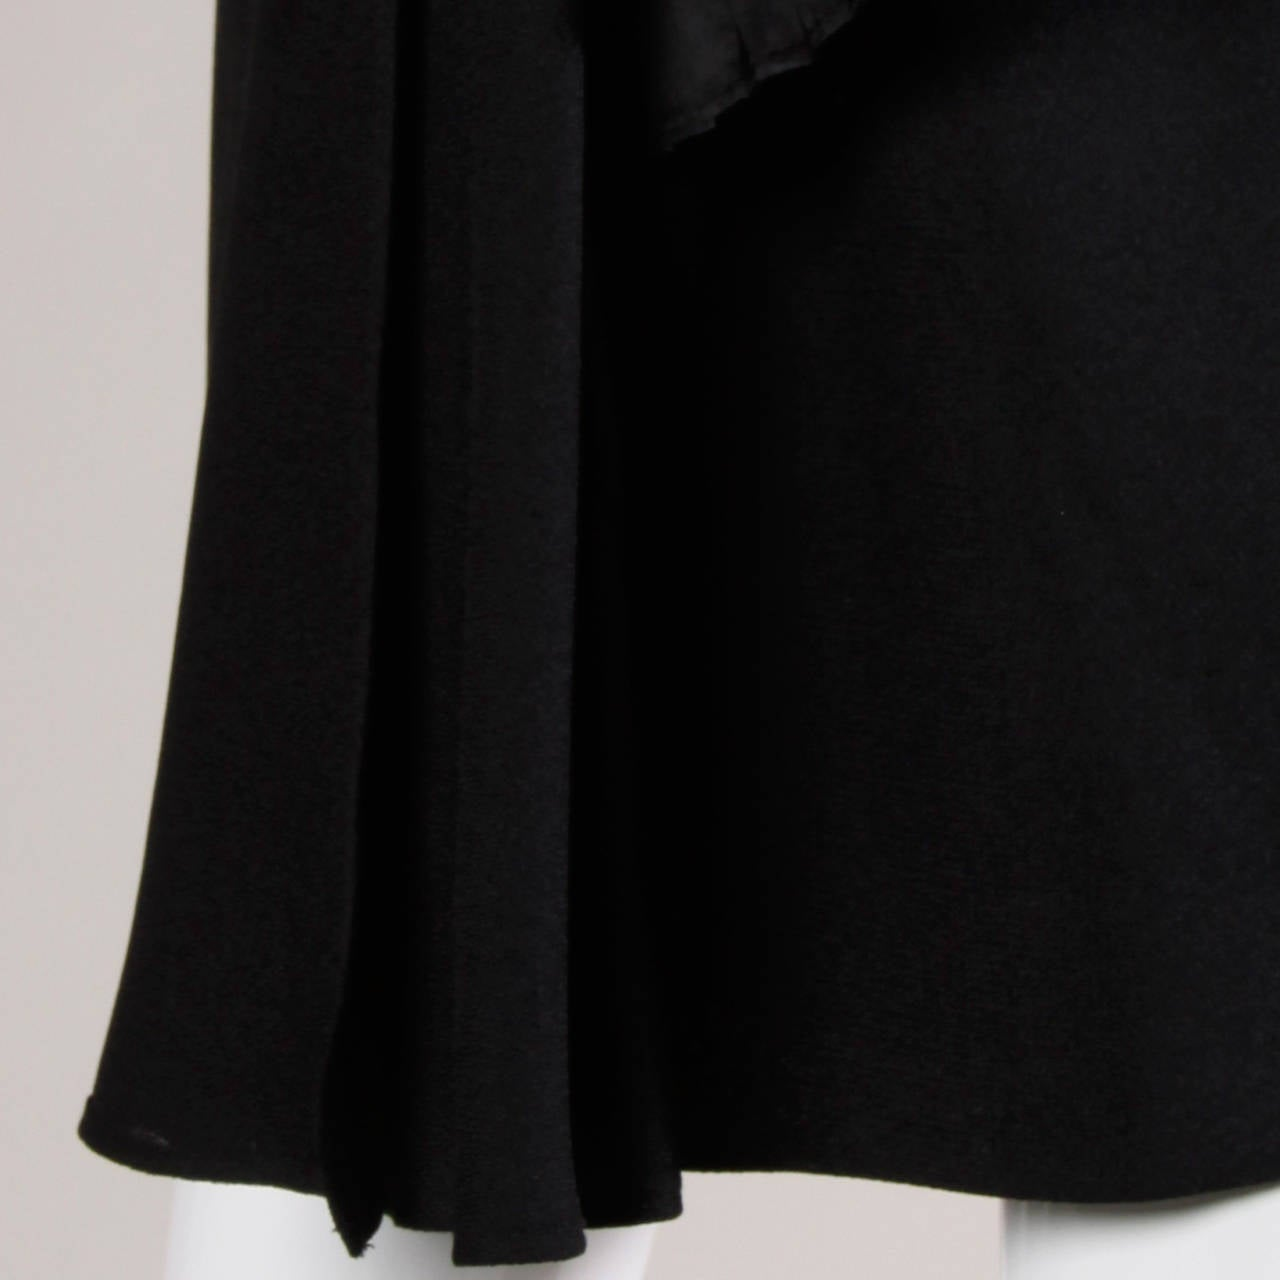 Victor Costa Vintage Black Origami Pleated Avant Garde Strapless Dress For Sale 3